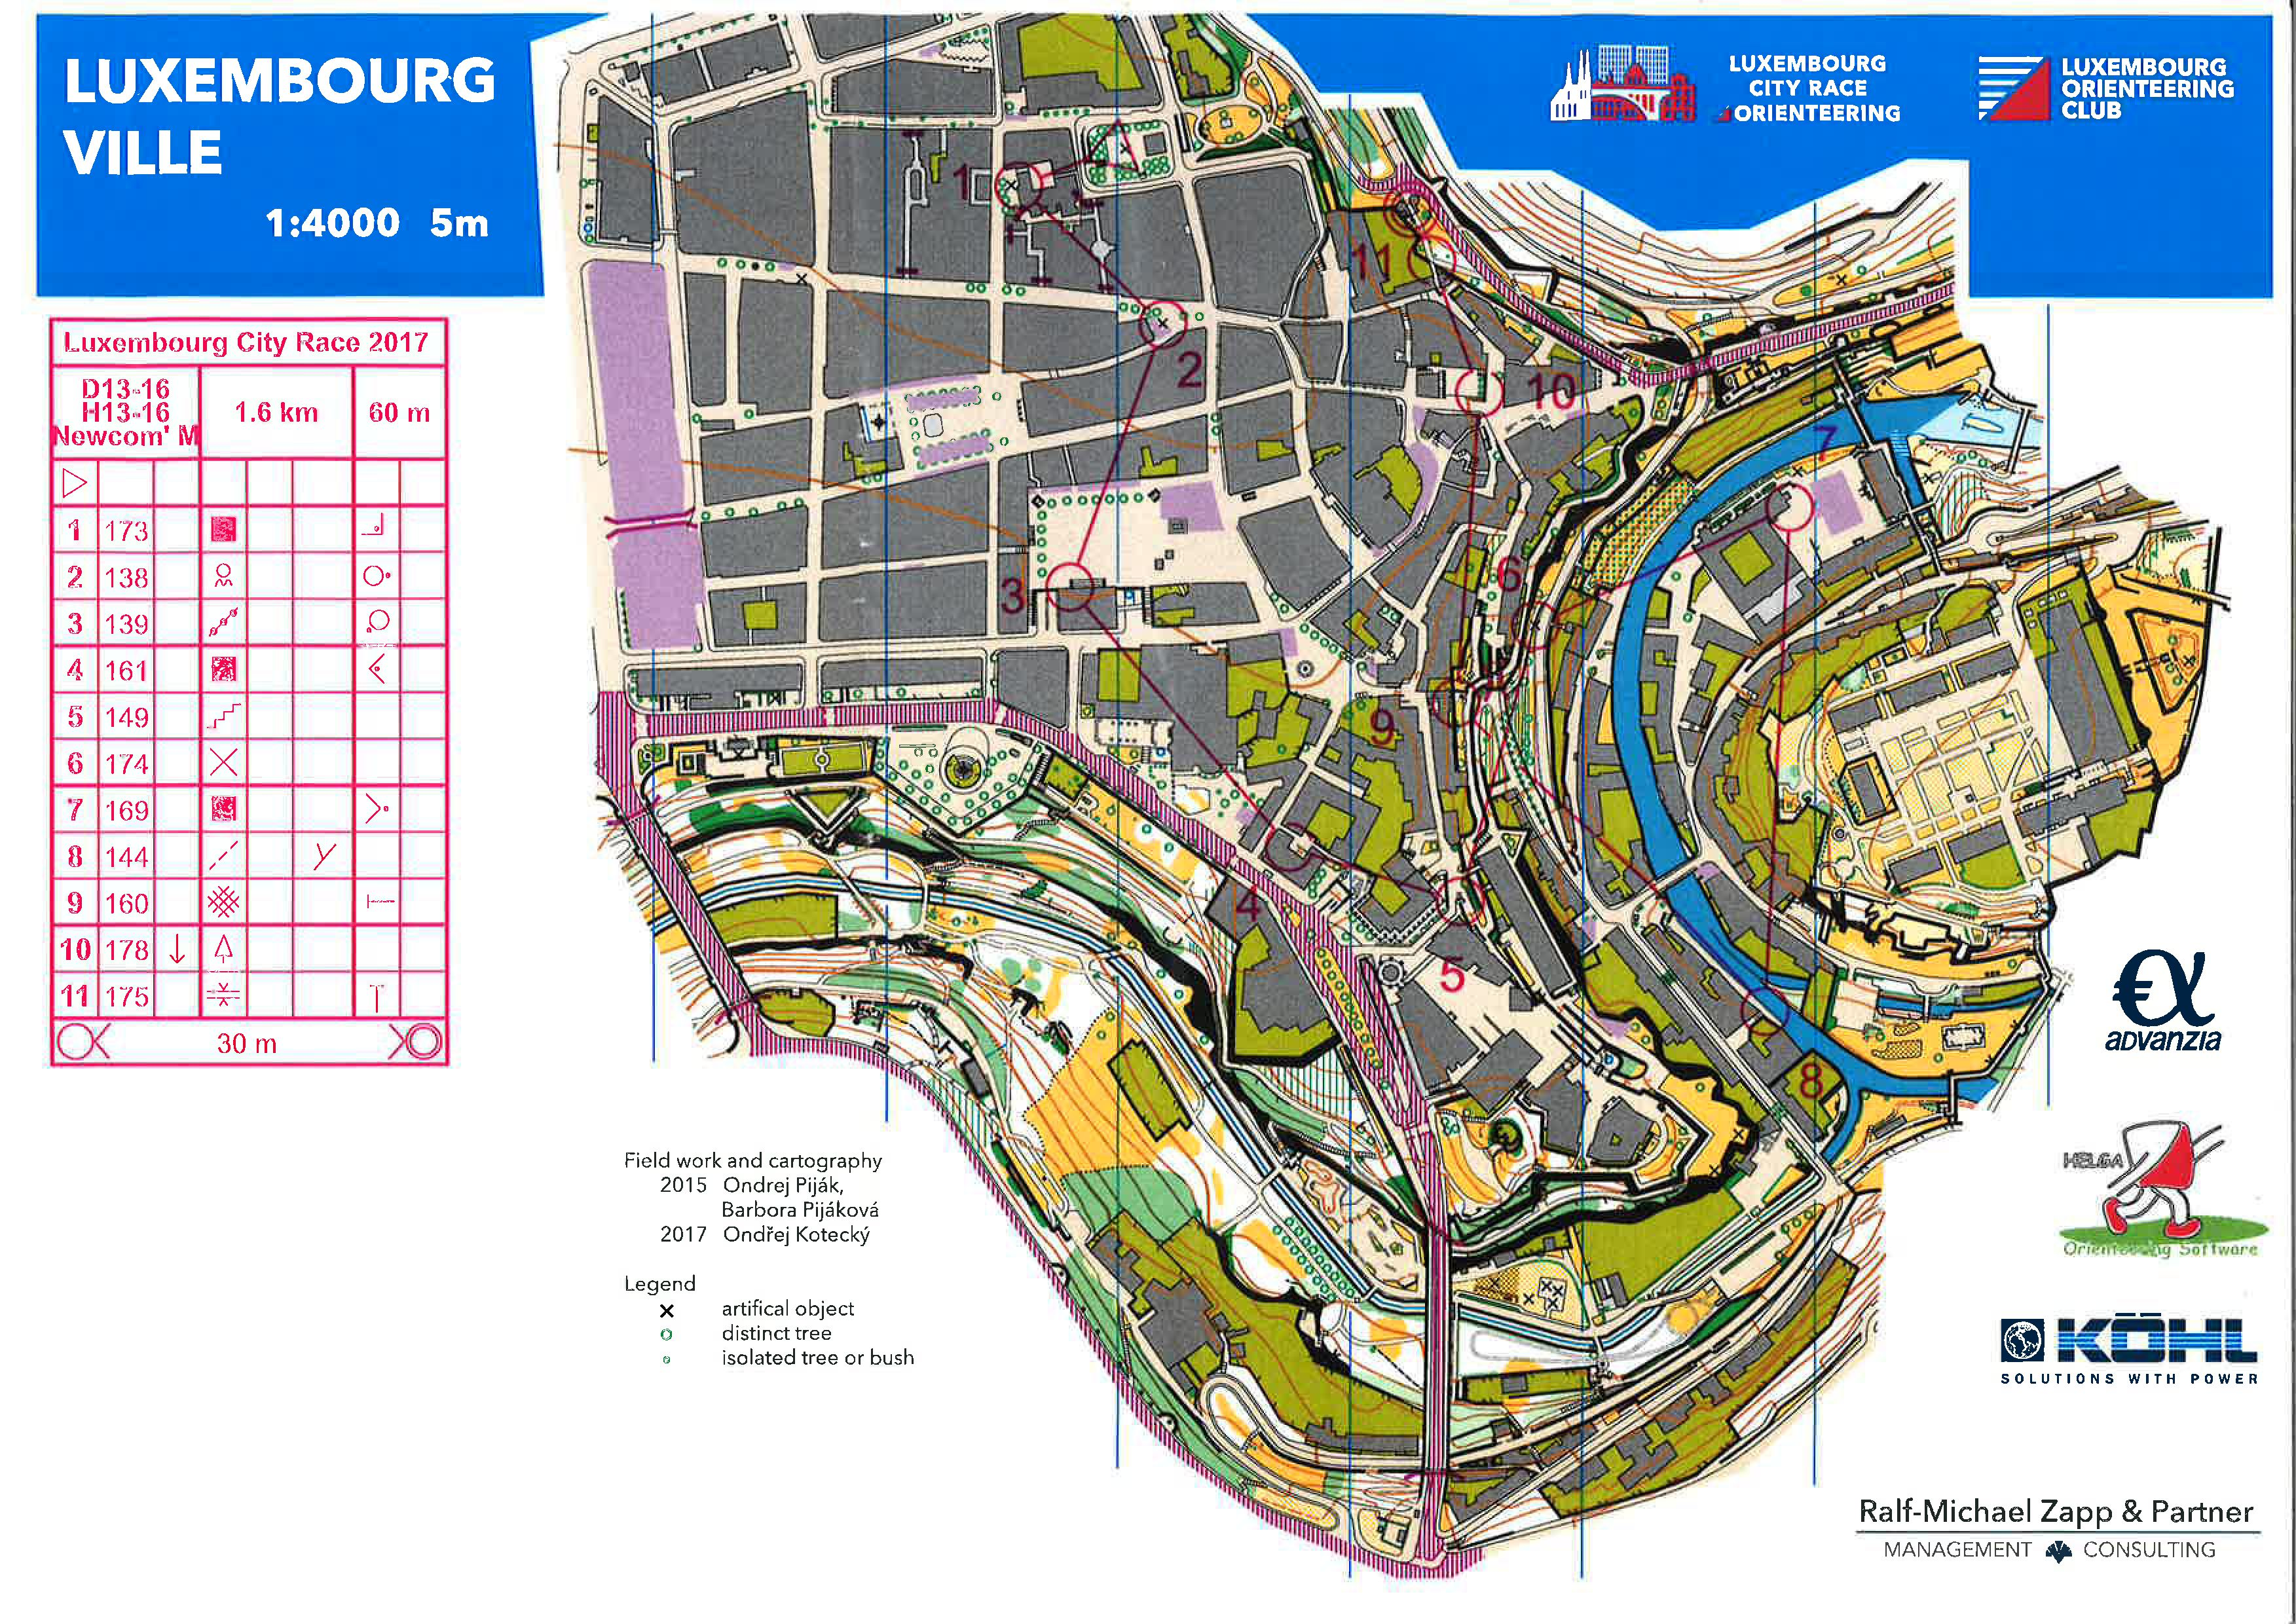 Luxembourg City Race (01-11-2017)